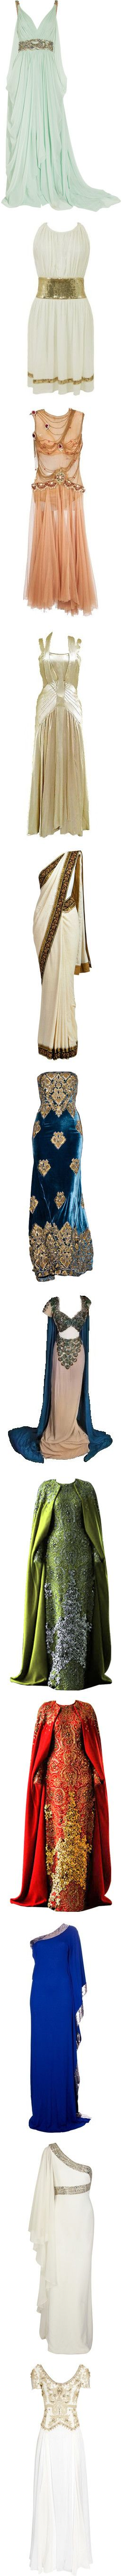 Old Dress 2.0 by kerstinxx on Polyvore featuring women's fashion, dresses, gowns, vestidos, long dresses, mint, short dresses, beaded gown, mint green evening dress and green dress